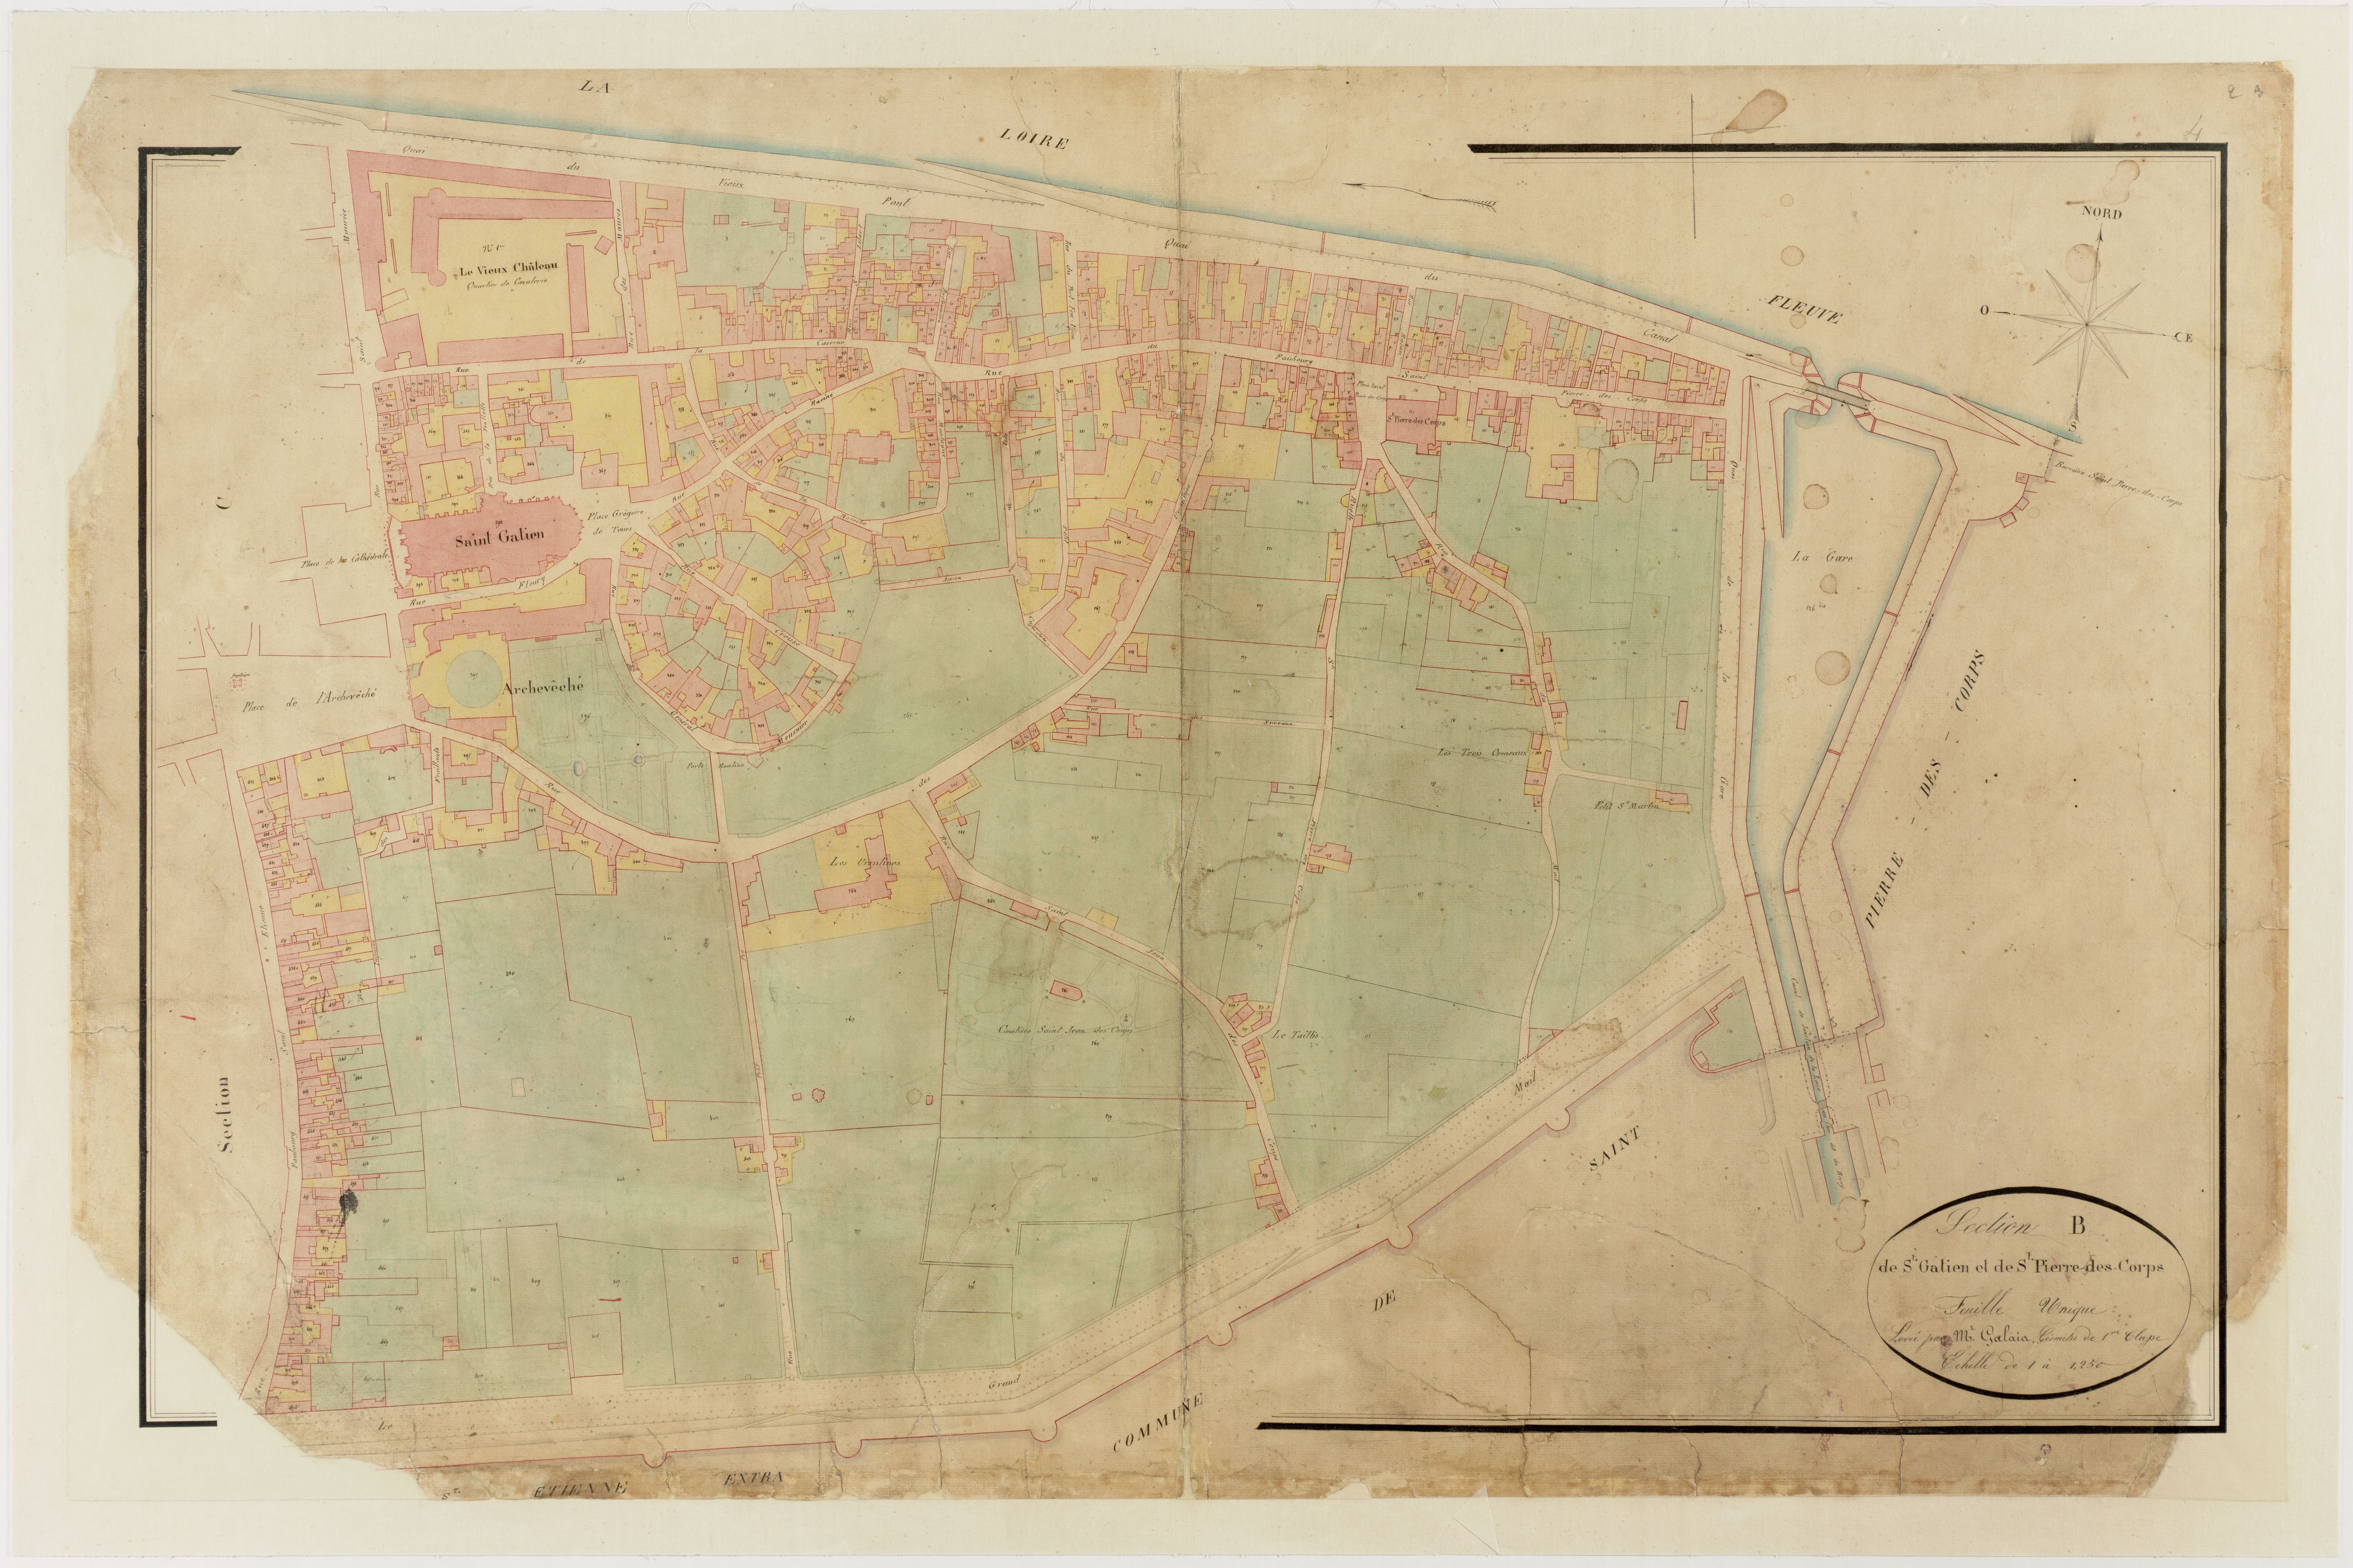 Plan cadastral napoléonien, section de Saint-Gatien et de Saint-Pierre-des-Corps. 1836. Archives municipales de Tours, série G.